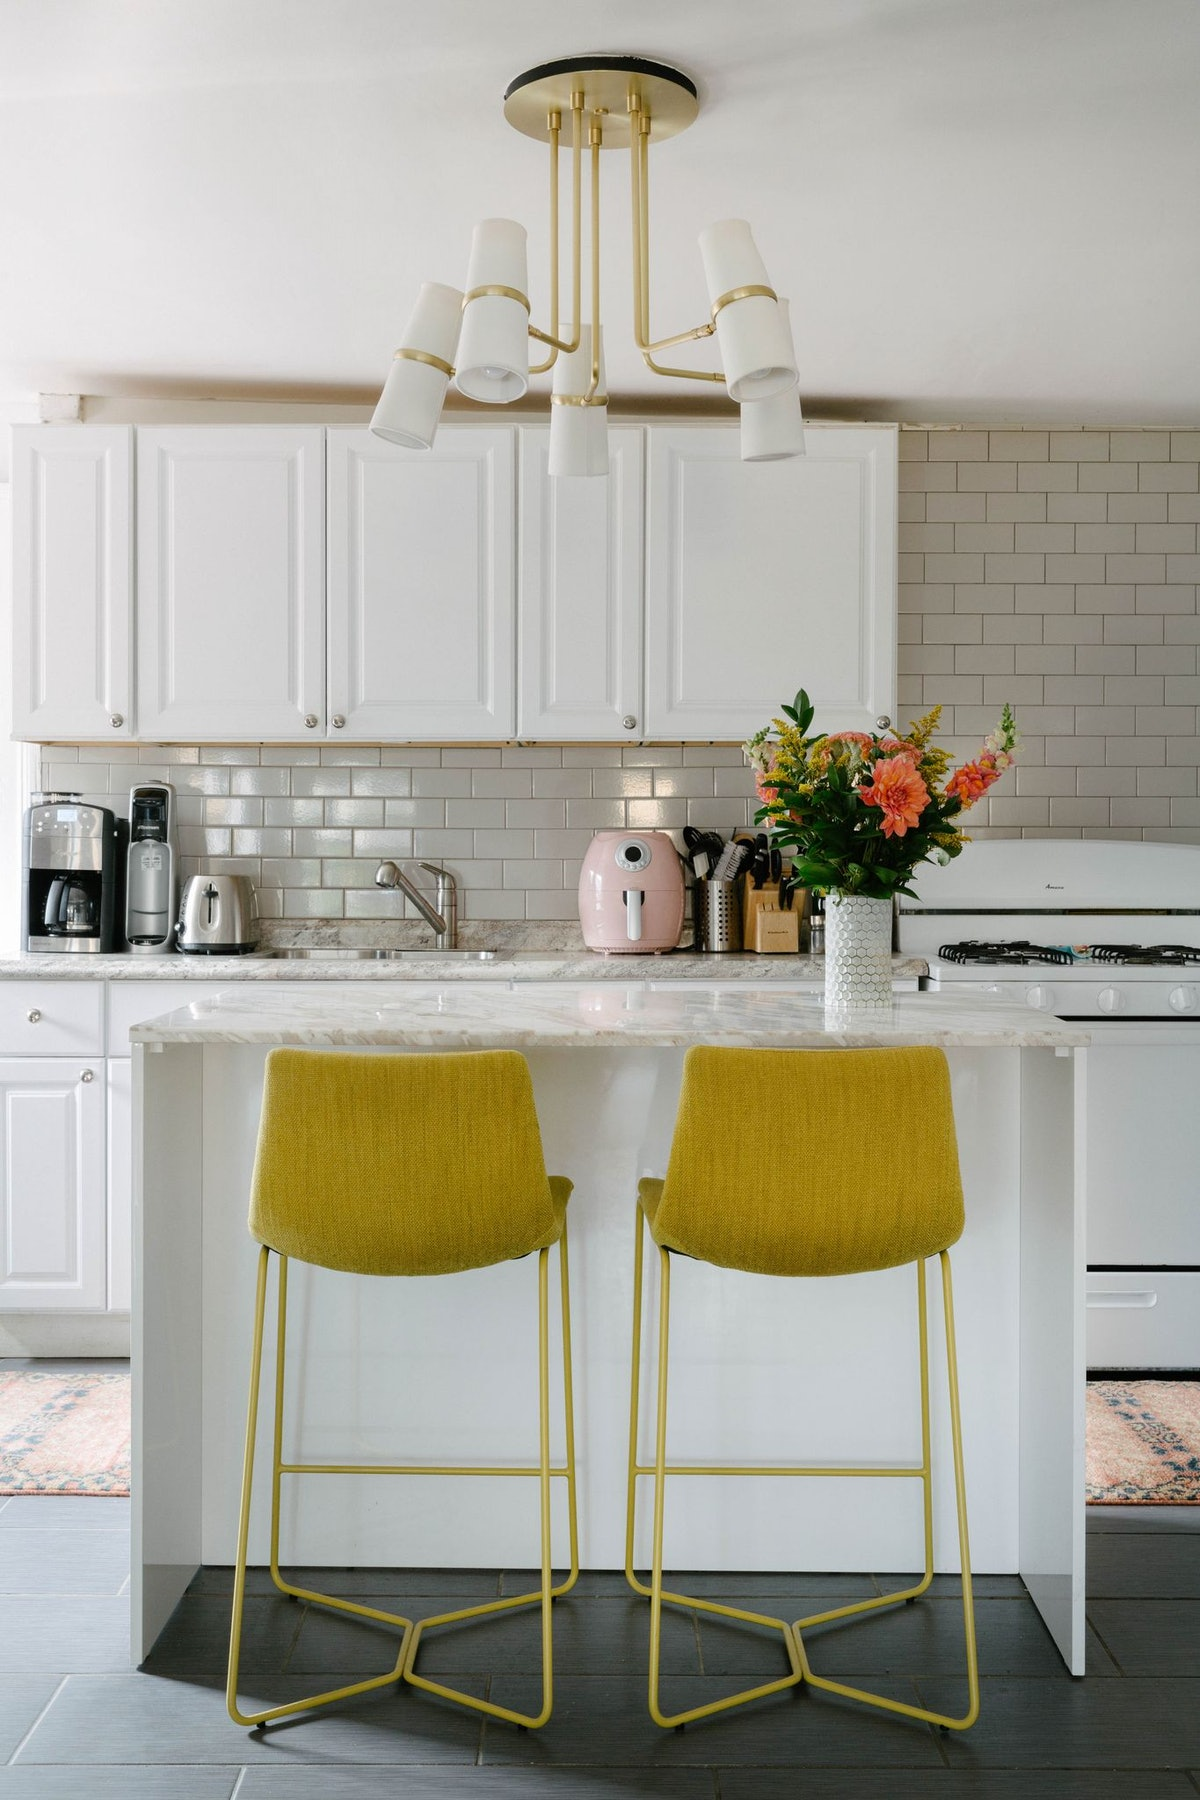 Bold colors are one of 2020's biggest decor trends